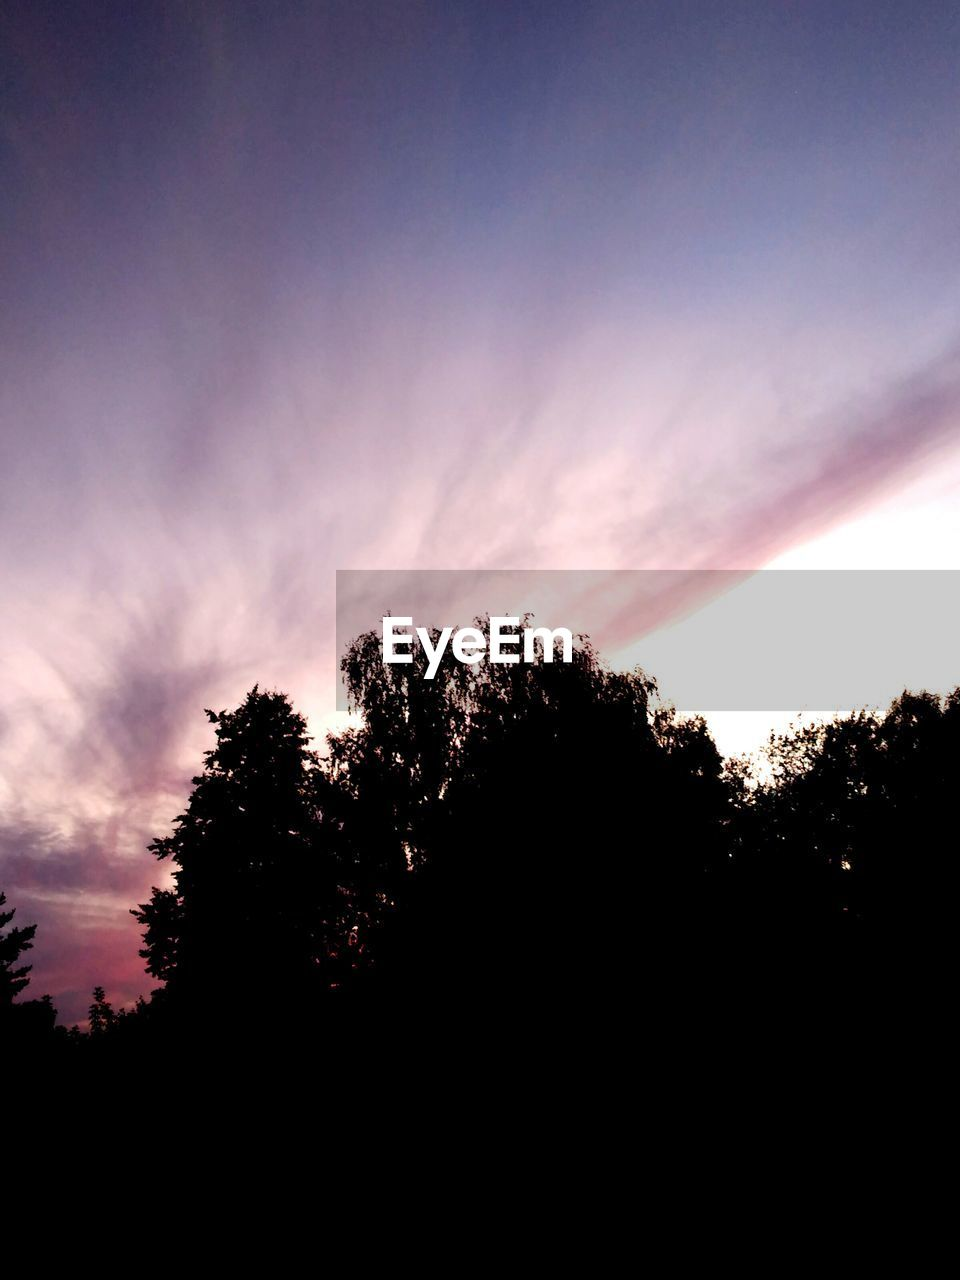 tree, silhouette, nature, beauty in nature, sky, scenics, tranquility, tranquil scene, sunset, no people, growth, outdoors, low angle view, landscape, day, scenery